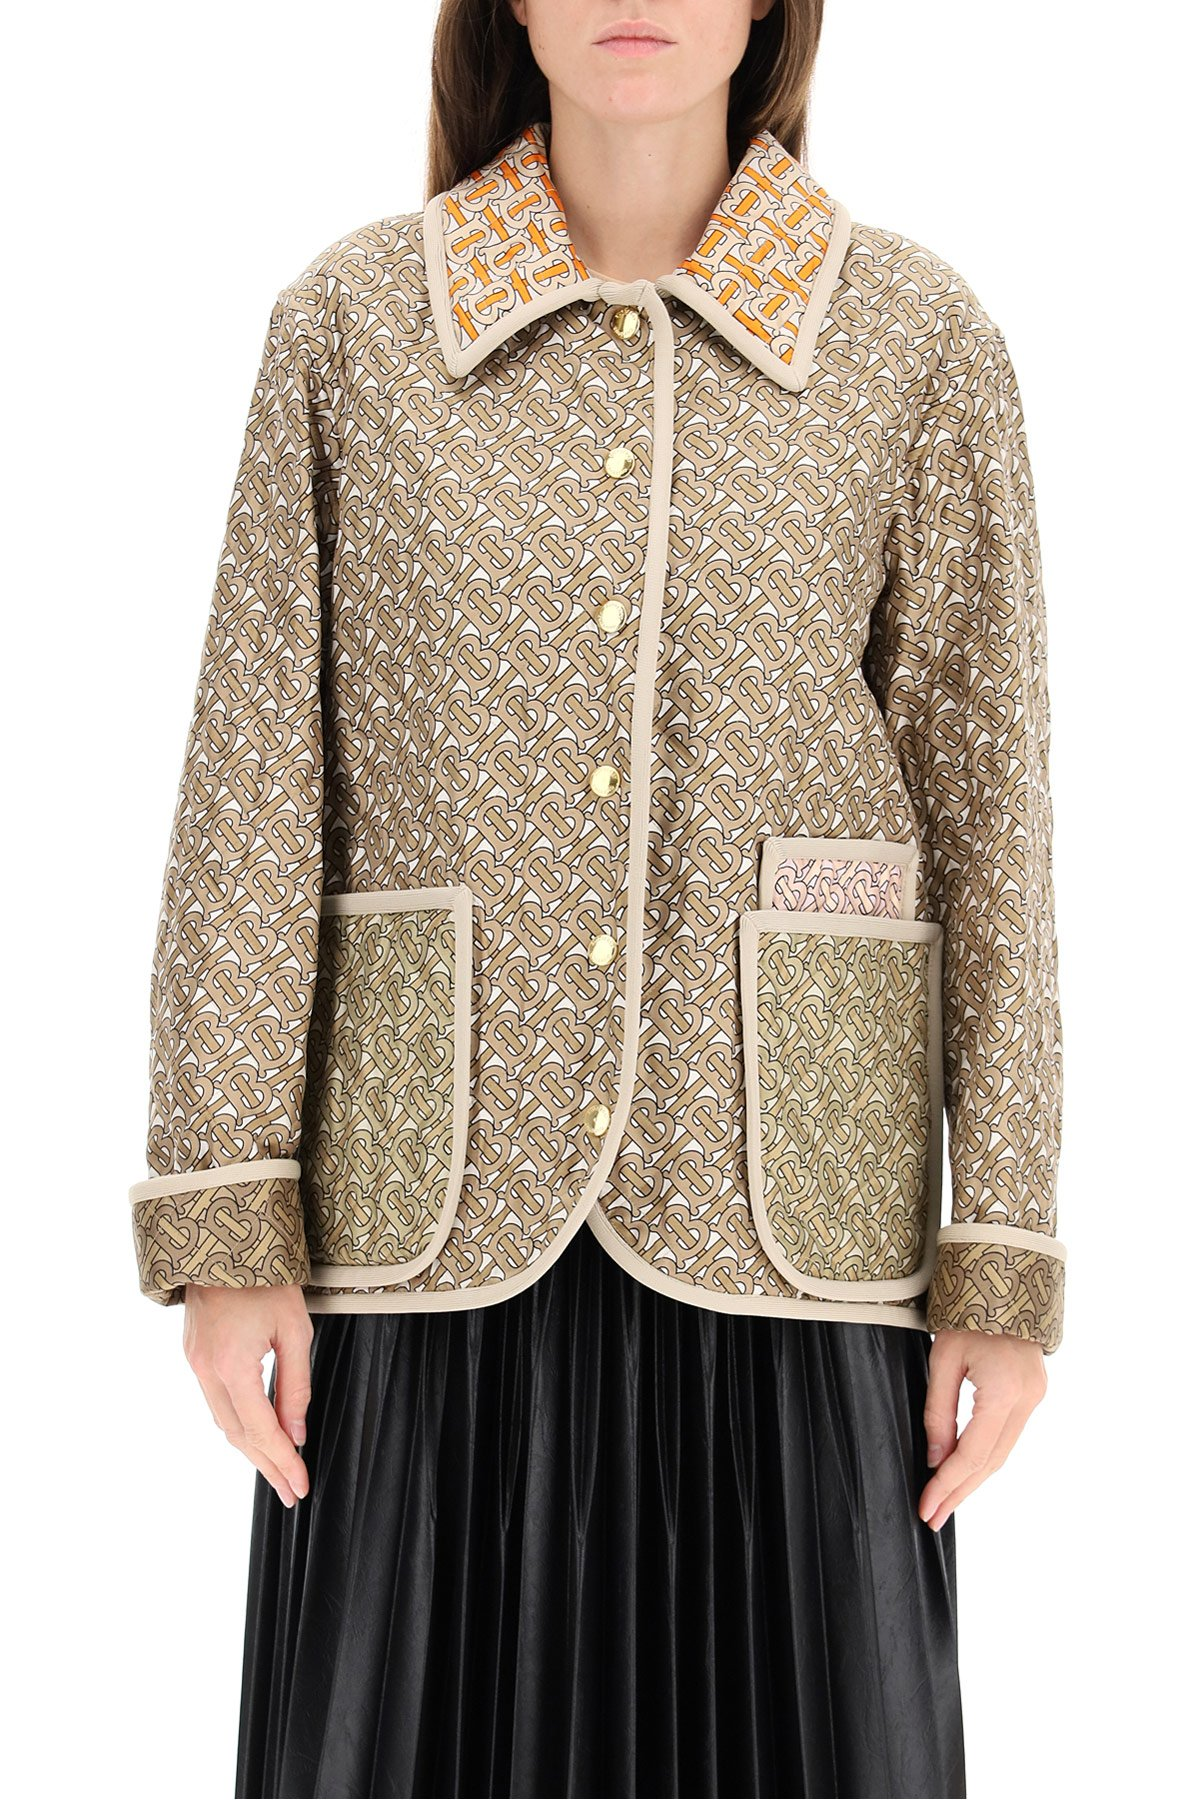 Burberry giacca quilted monogram